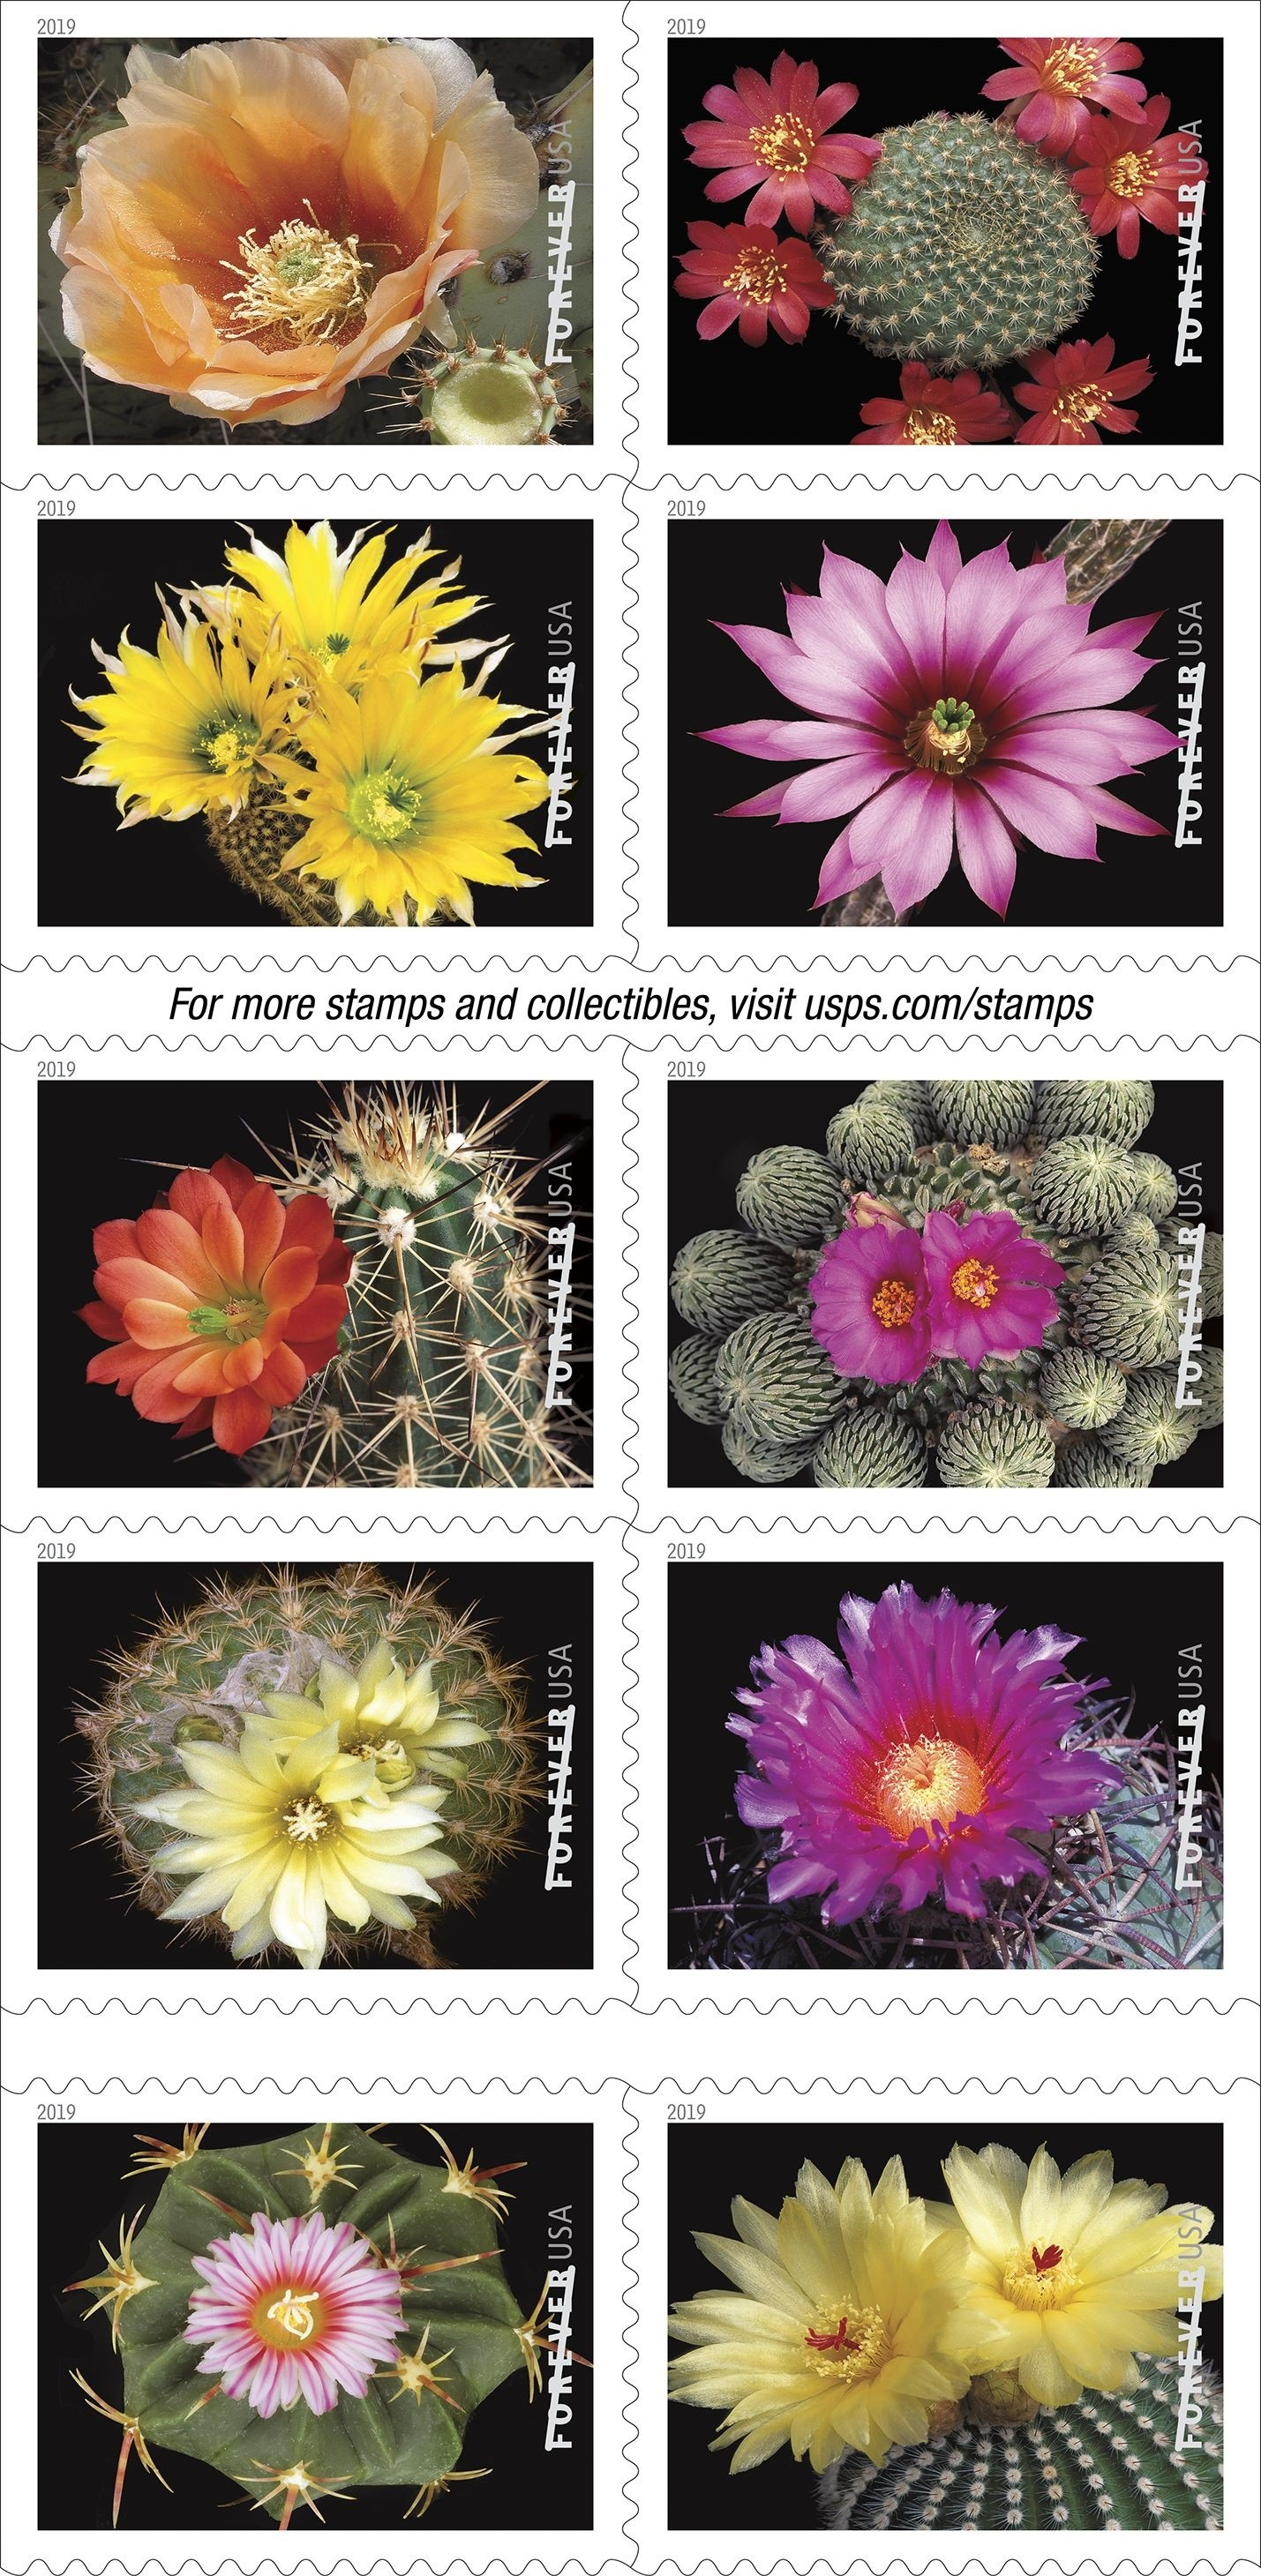 USPS-cacti-stamps